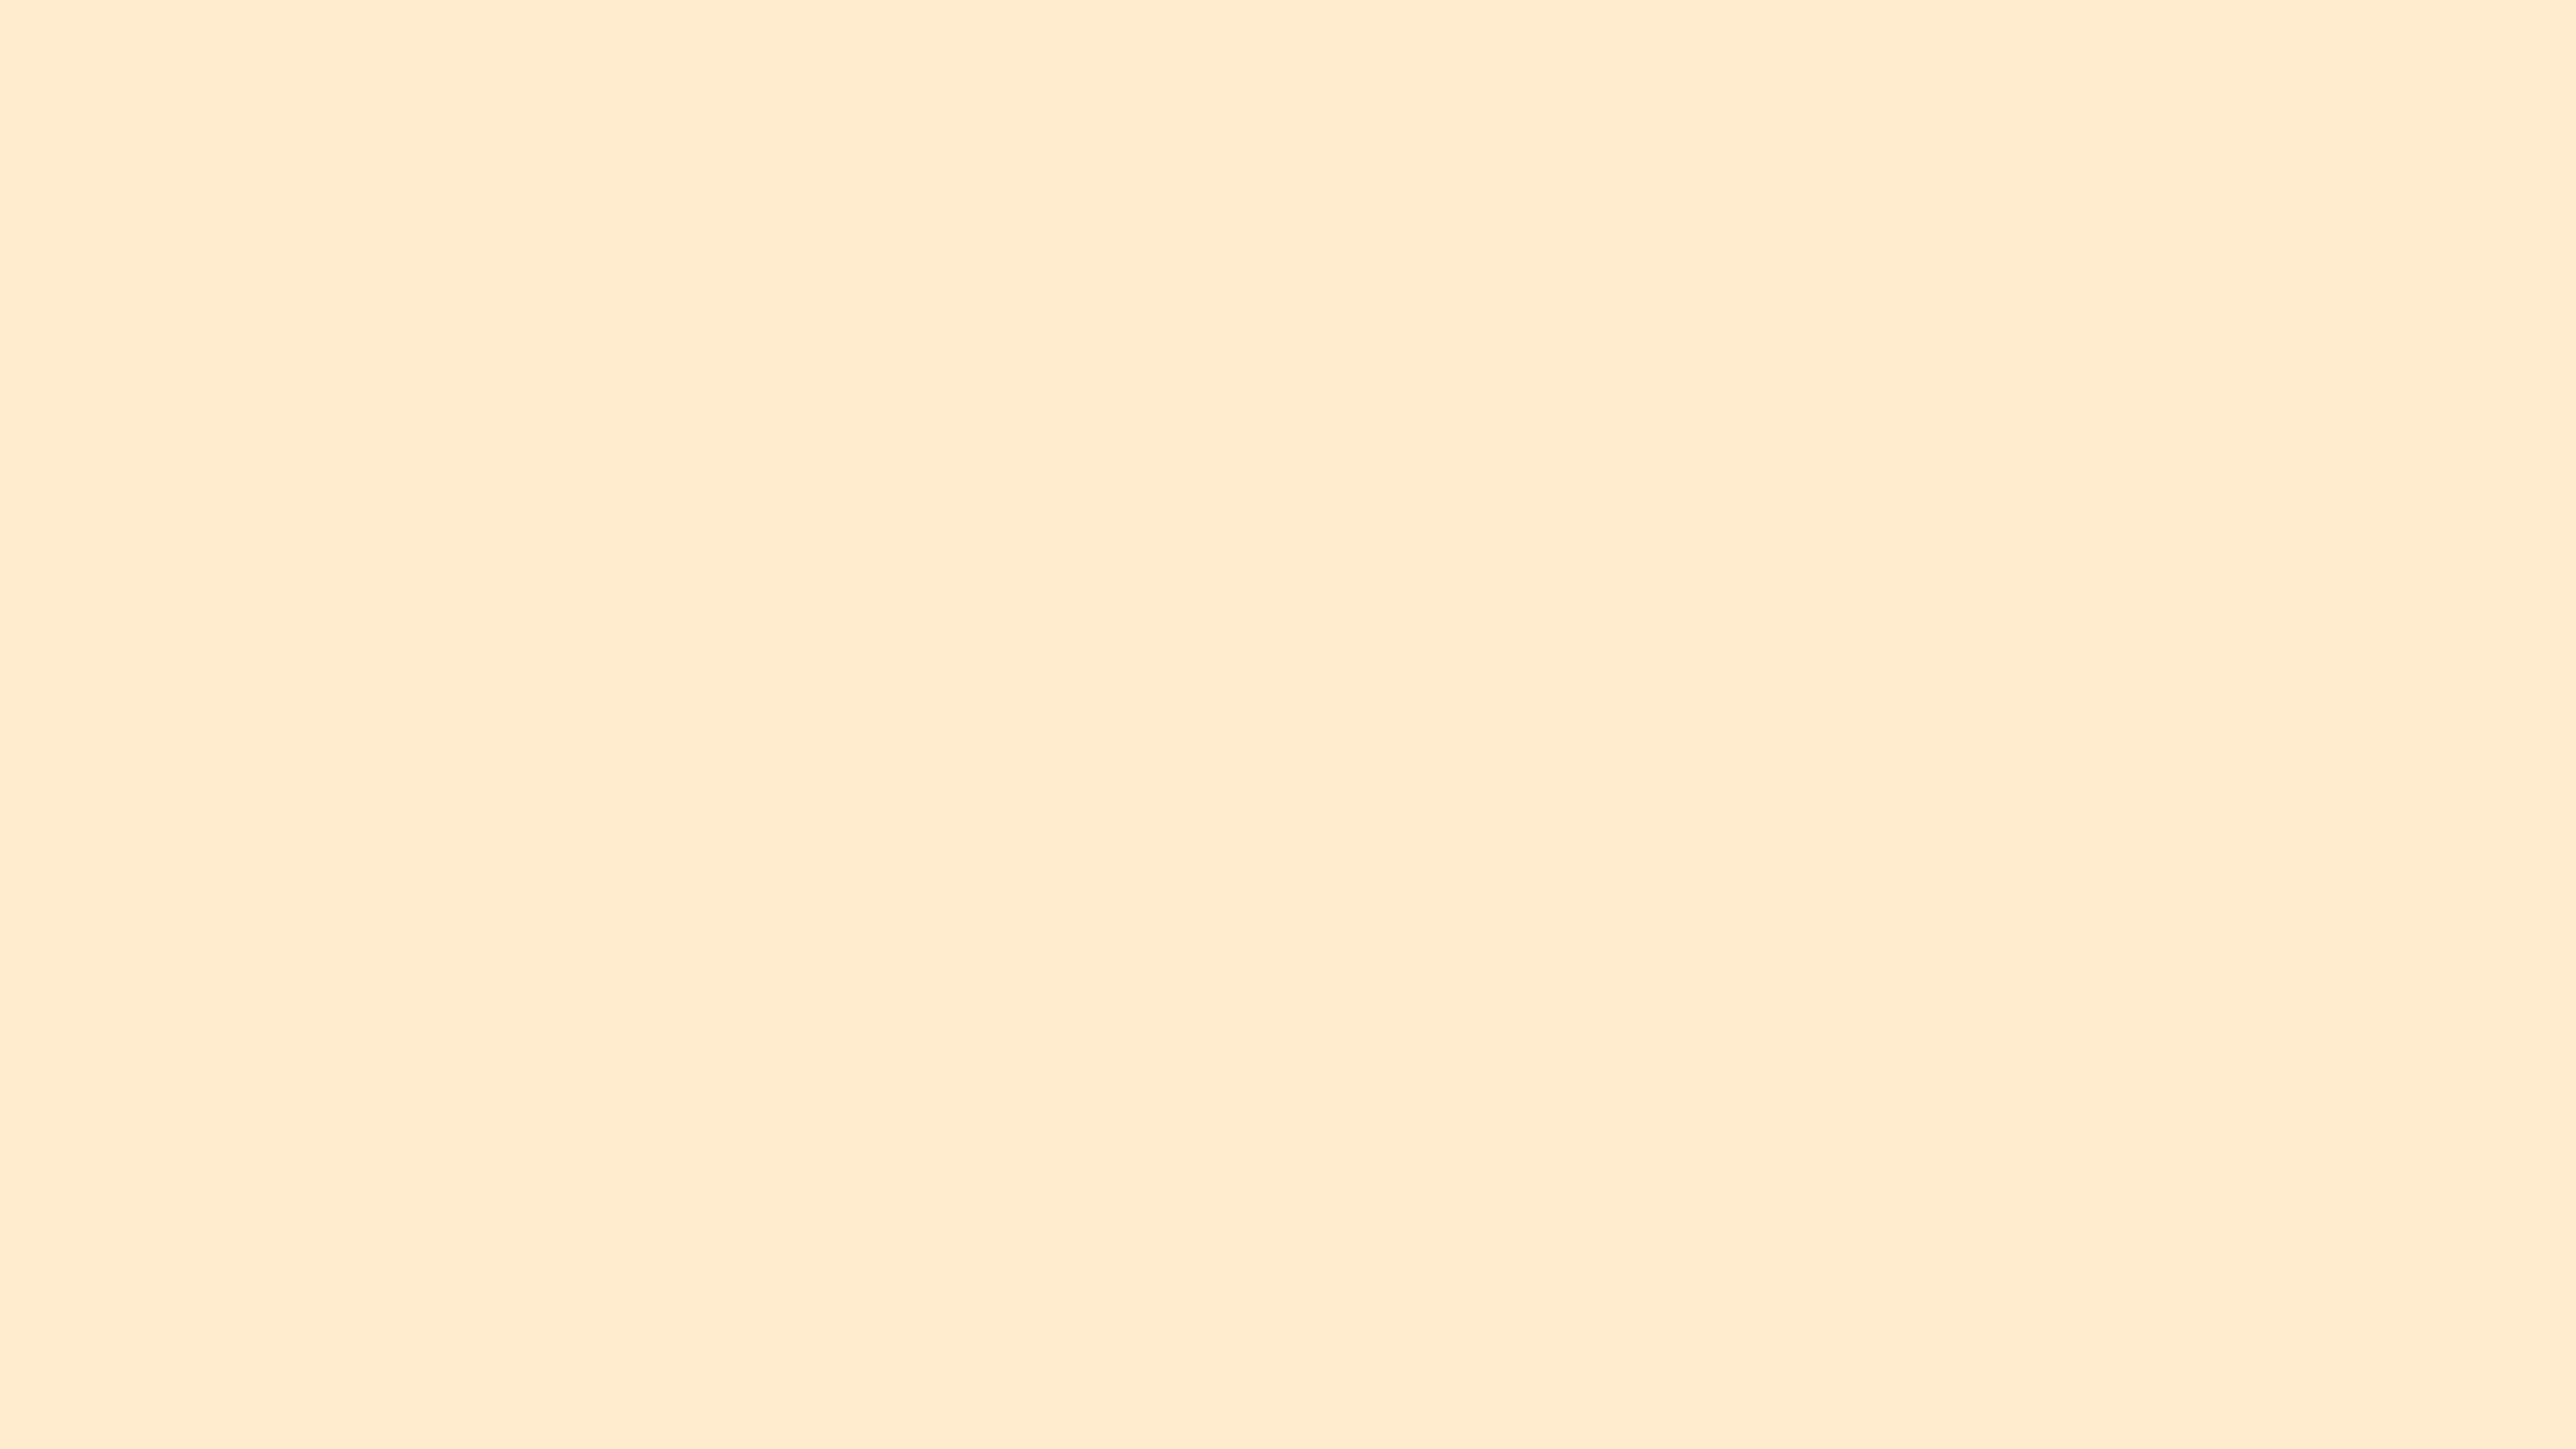 4096x2304 Blanched Almond Solid Color Background